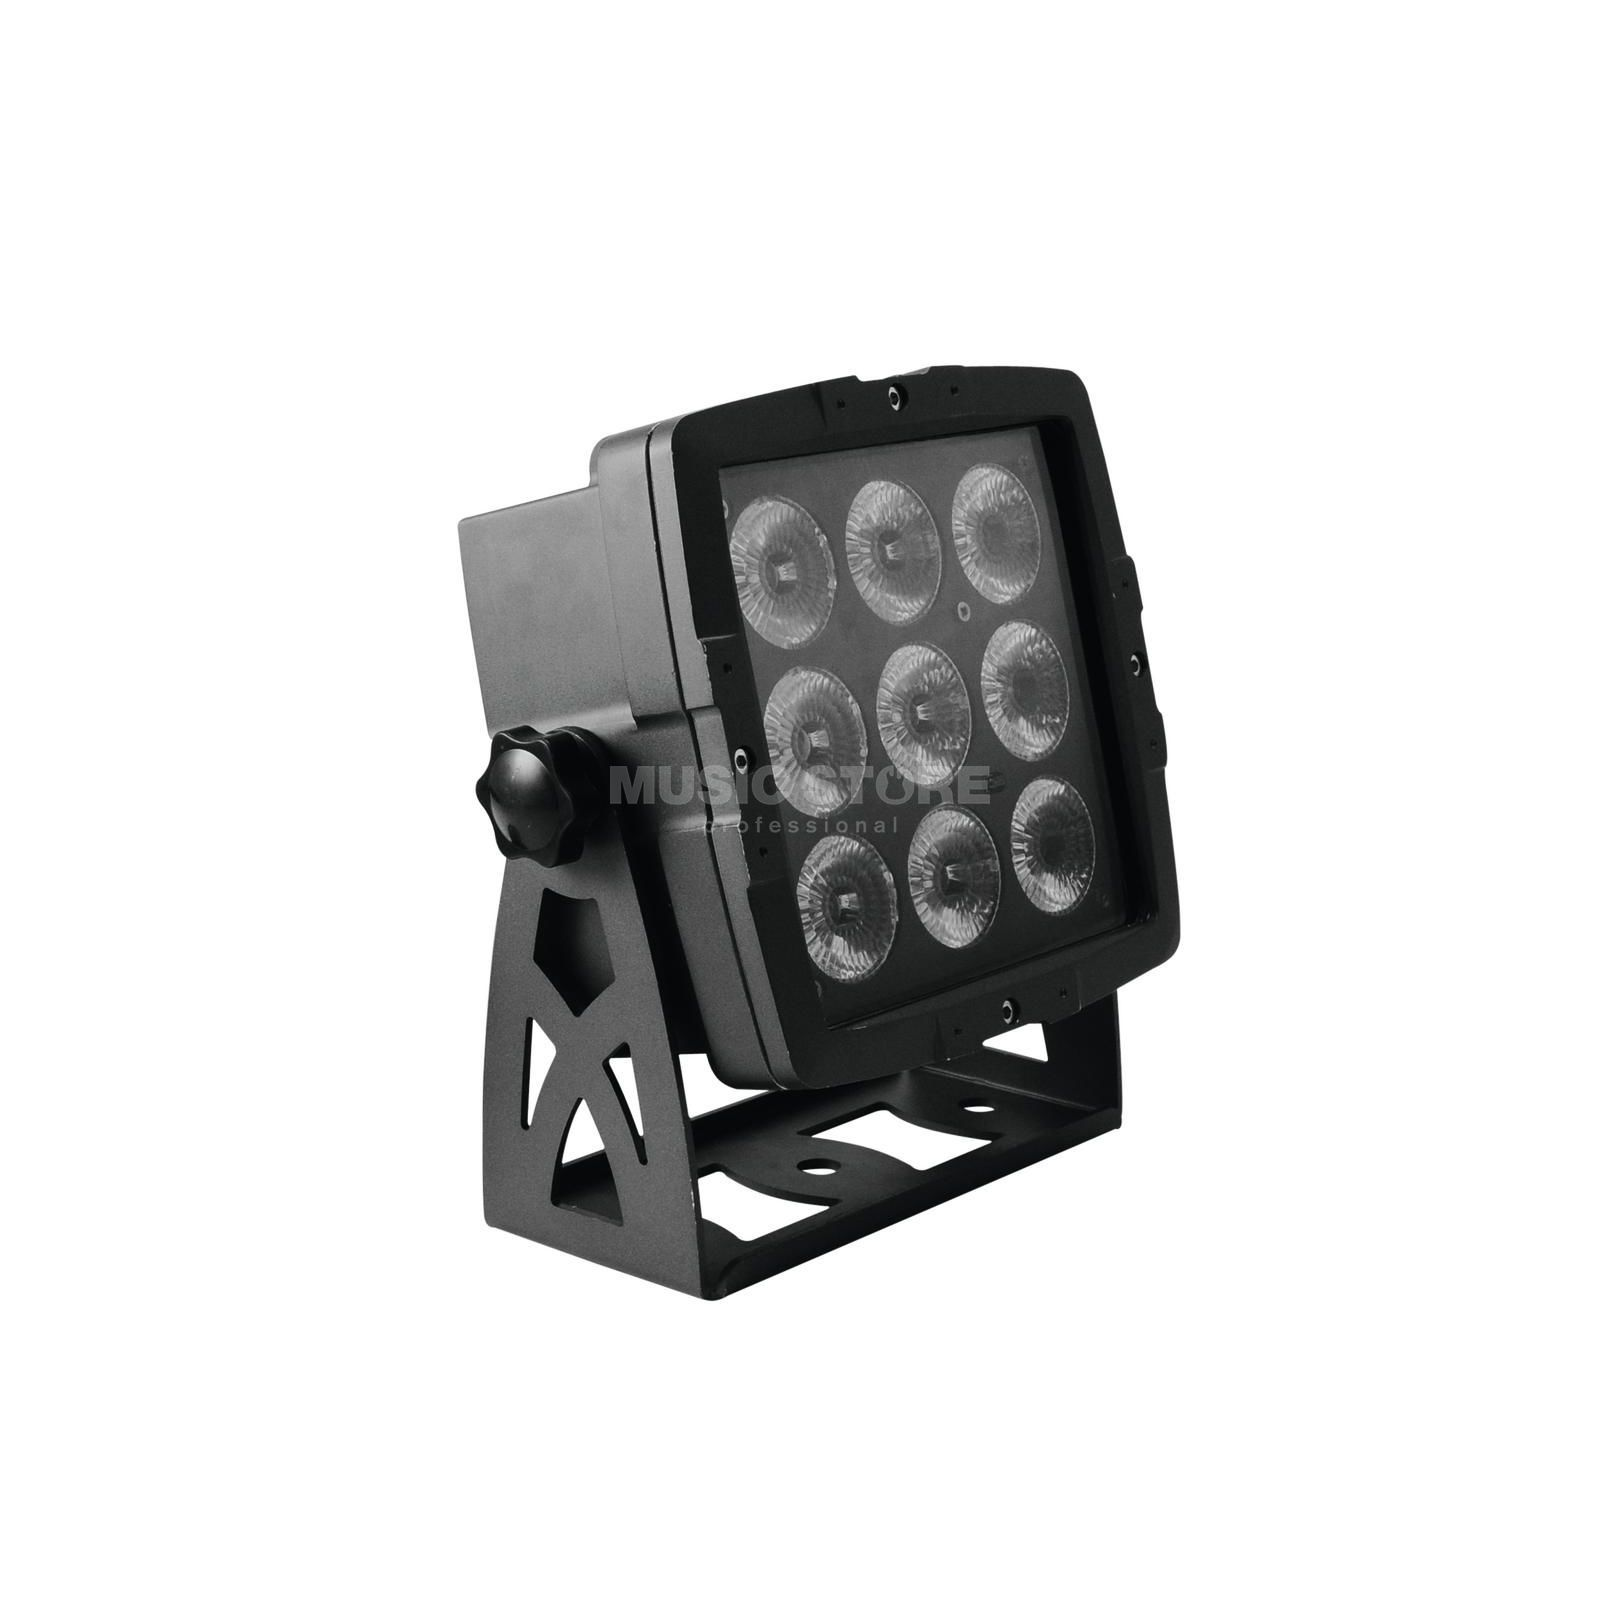 Eurolite LED IP PAD 9x8W QCL Architecture Spot Light IP65 Produktbillede